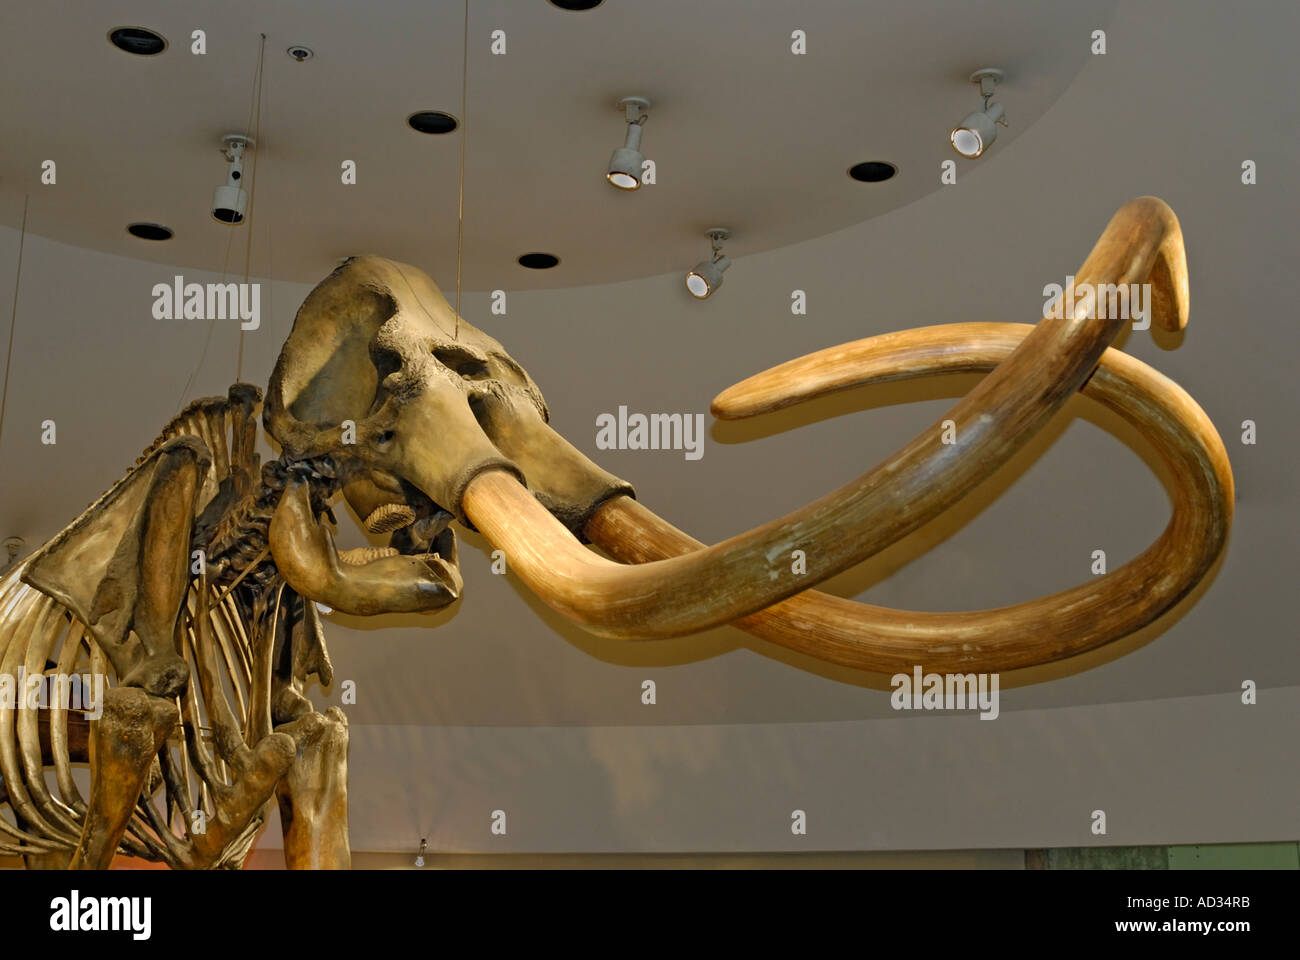 Columbian Mammoth, Mammuthus columbi, prehistoric skeleton with tusks from La Brea Tar Pits, Page Museum - Stock Image